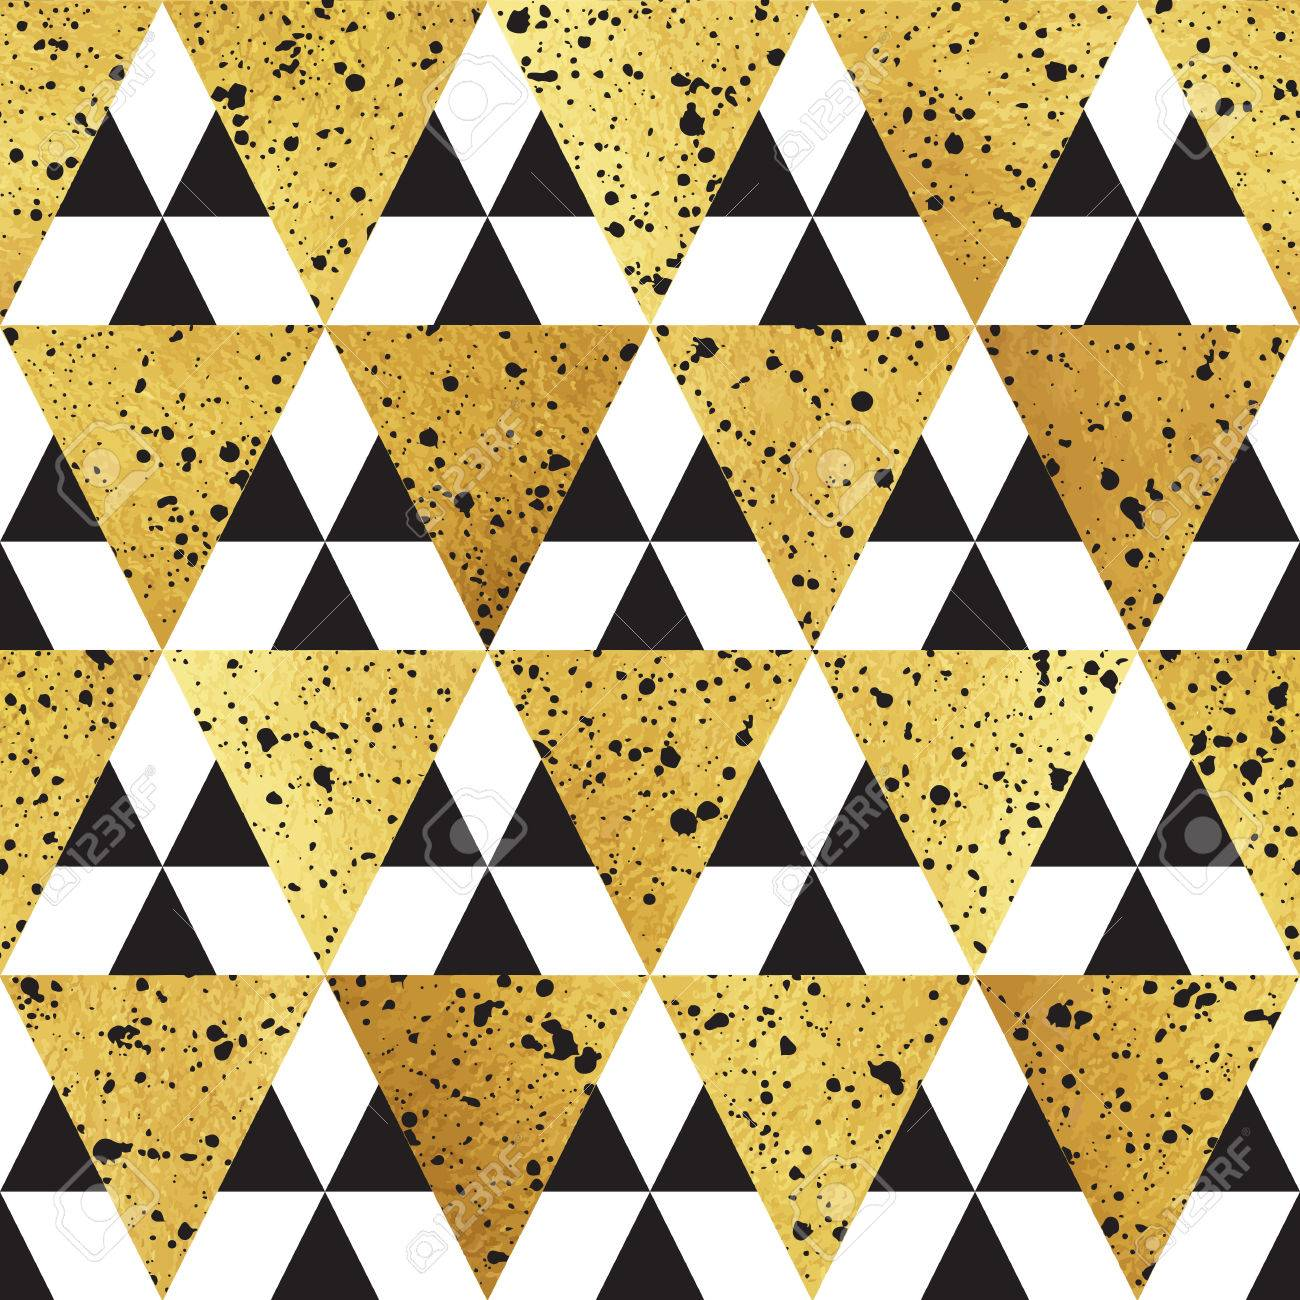 Gold Triangles With Black Splash Texture Seamless Vector Pattern